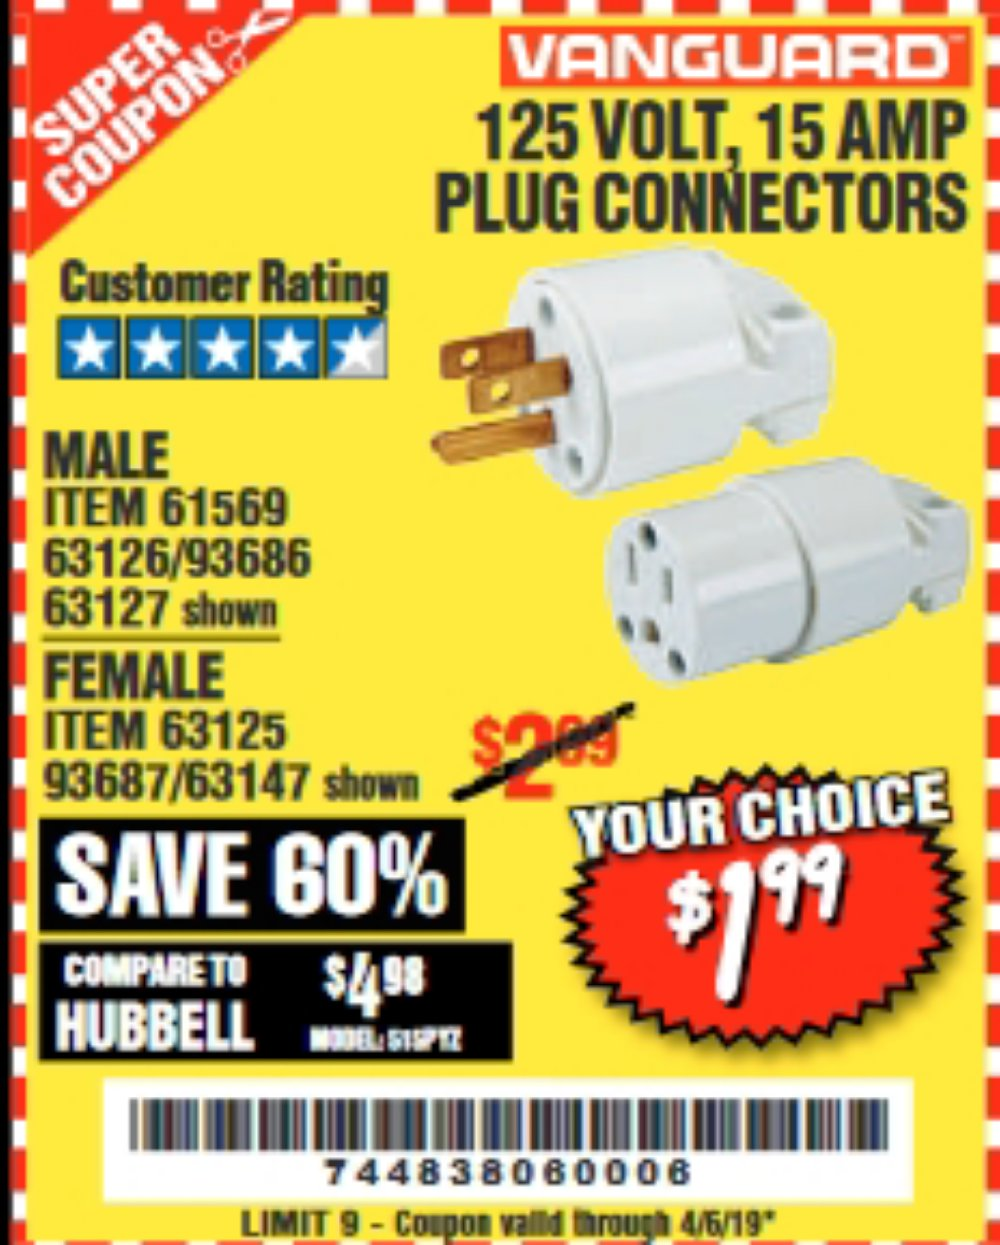 Harbor Freight Coupon, HF Coupons - 61569